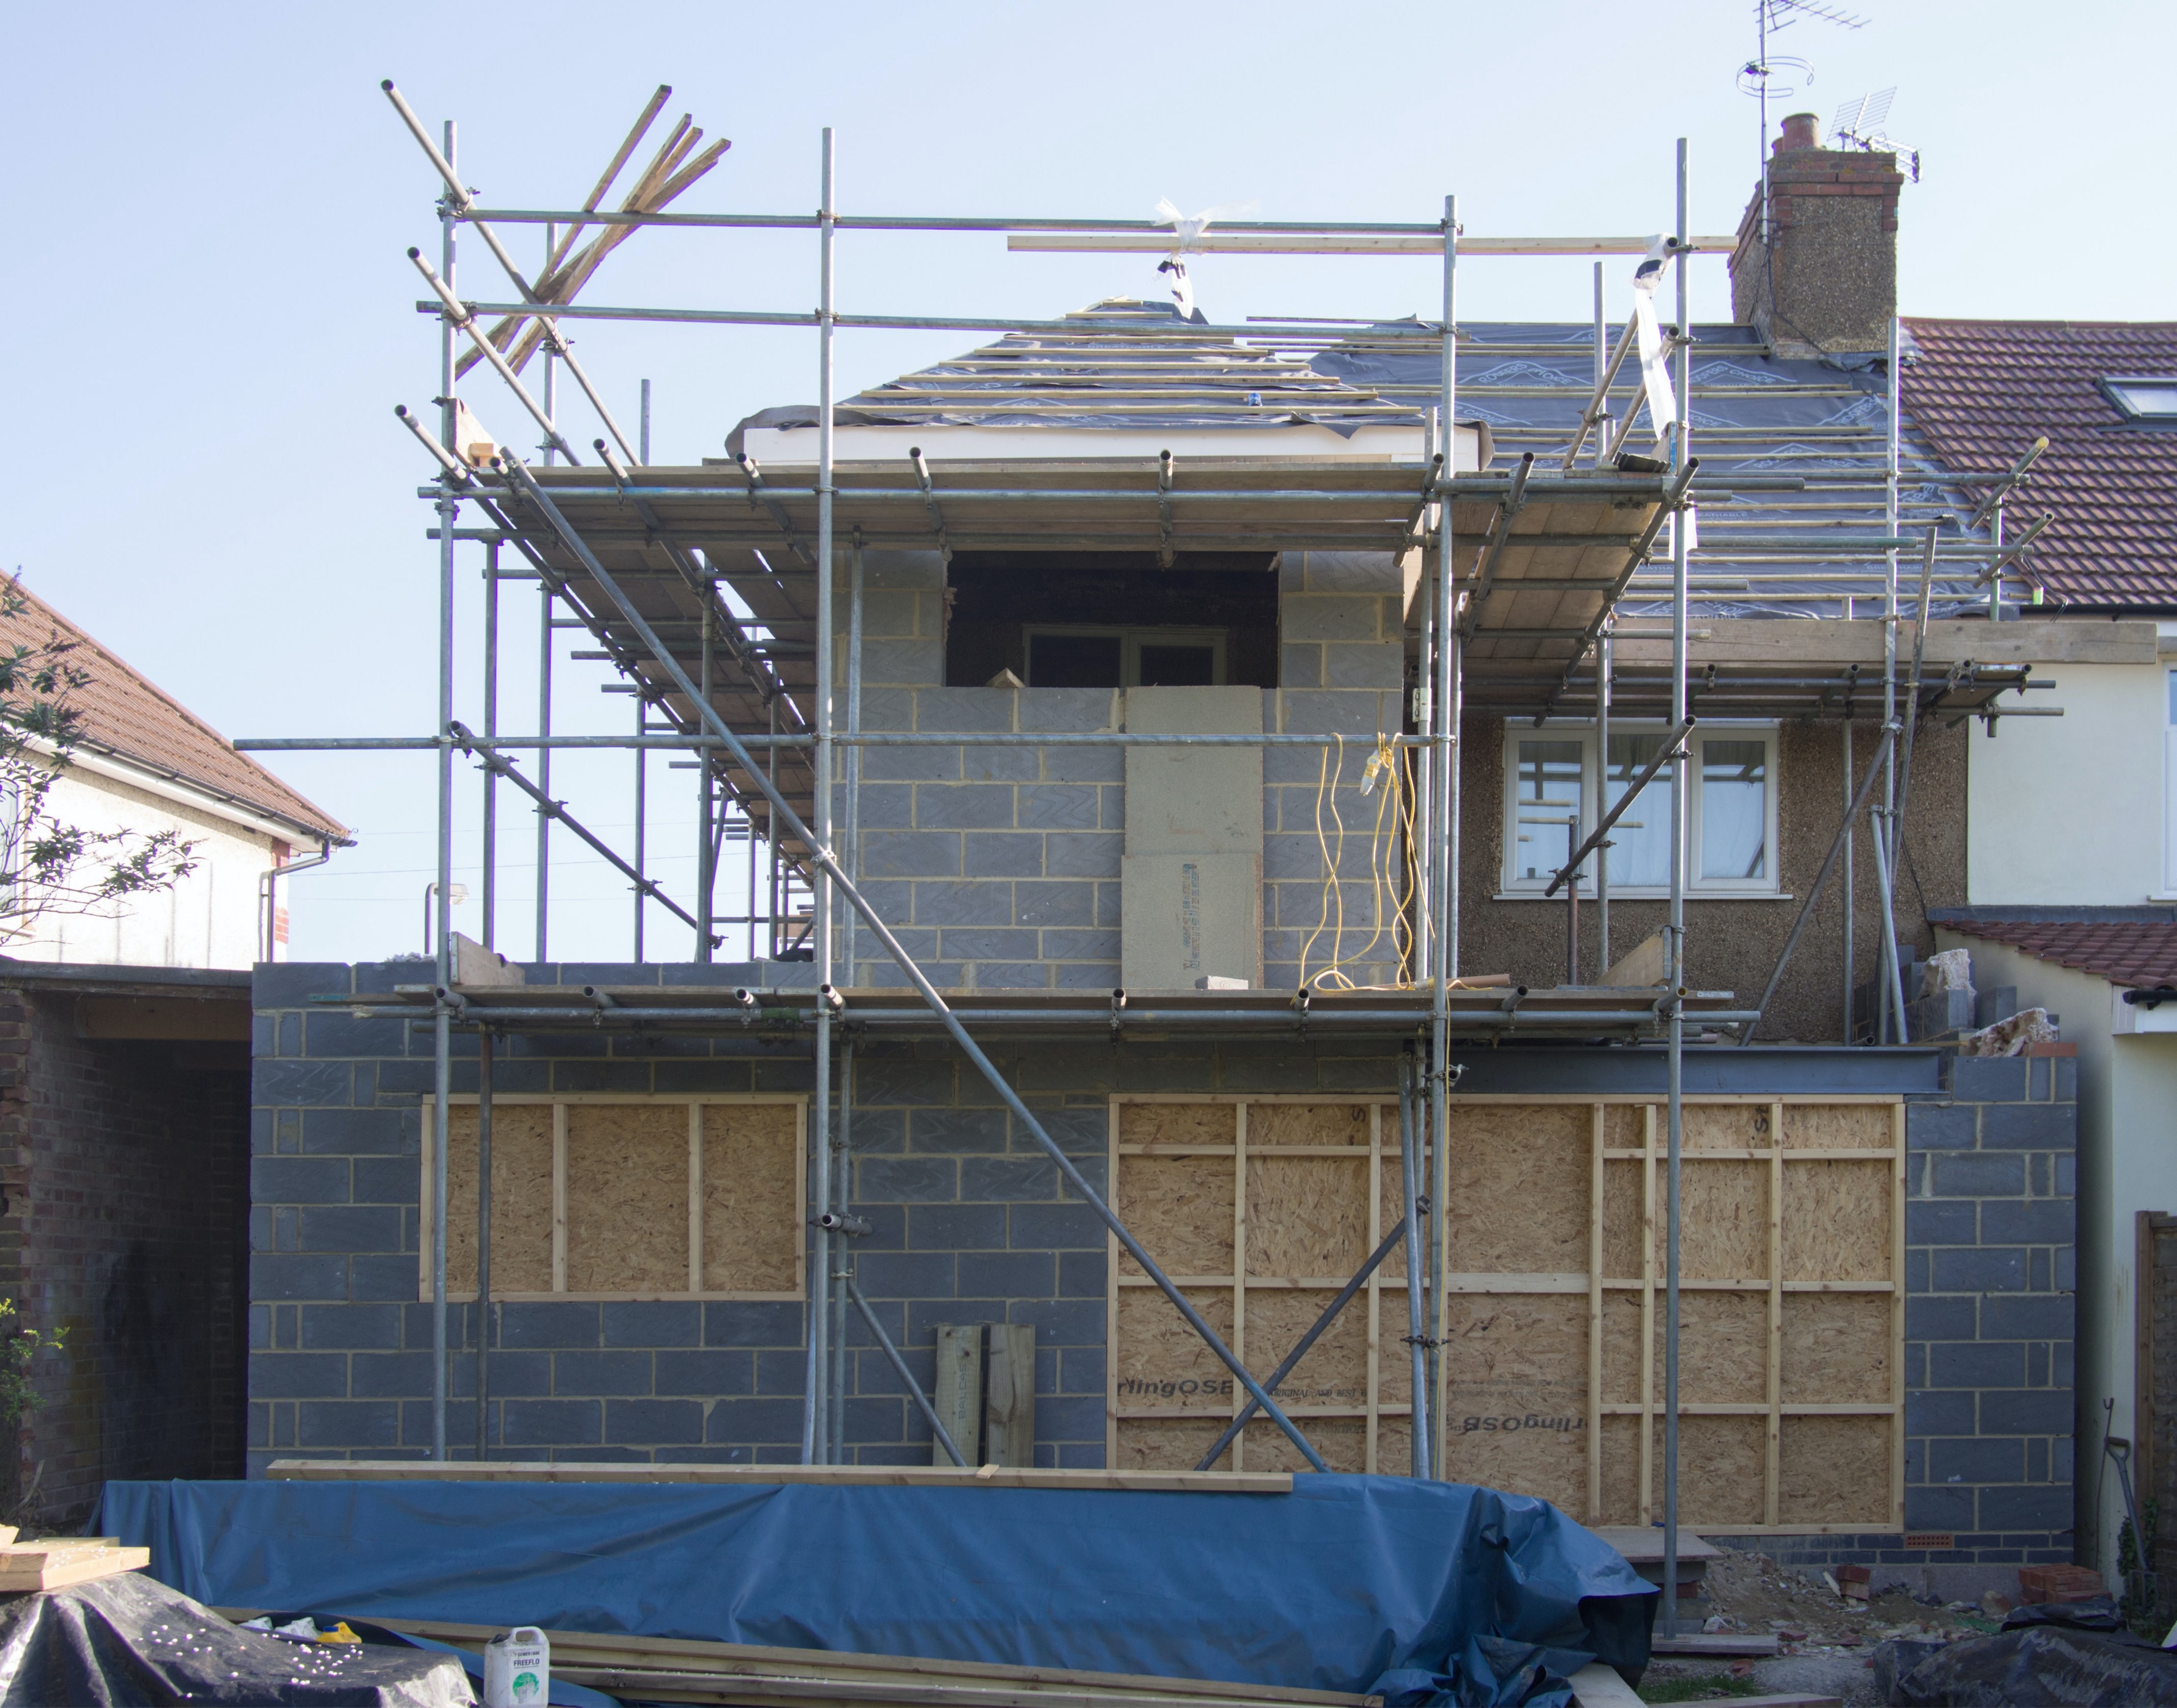 Double story house extension in progress